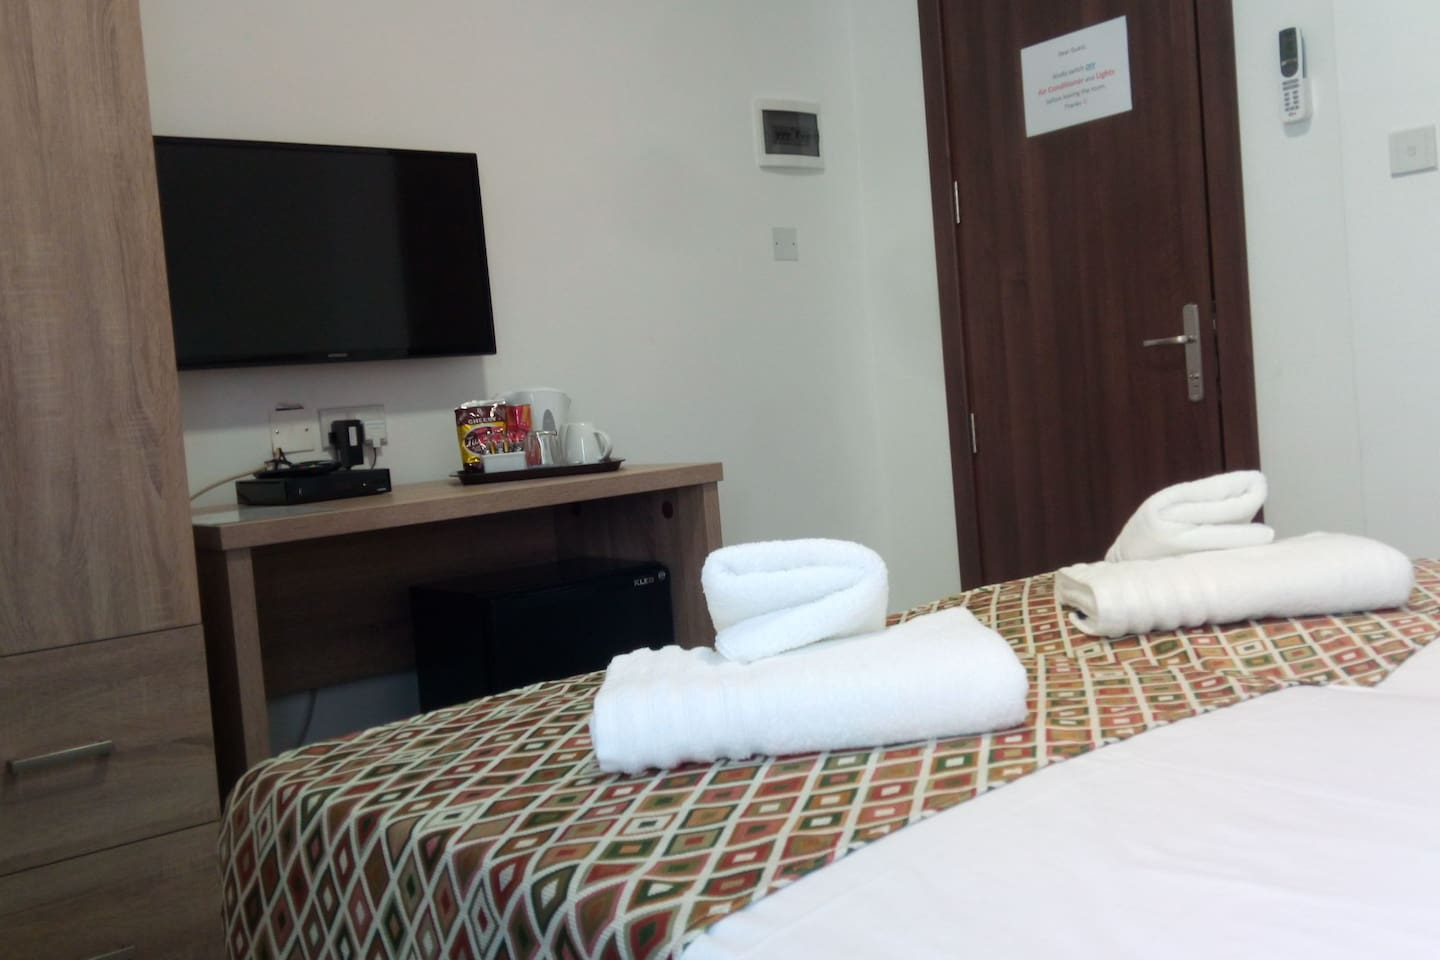 Equipped with Air conditioner, Cable TV, Kettle, Mini fridge, WiFi, En Suite and a common sea front balcony.